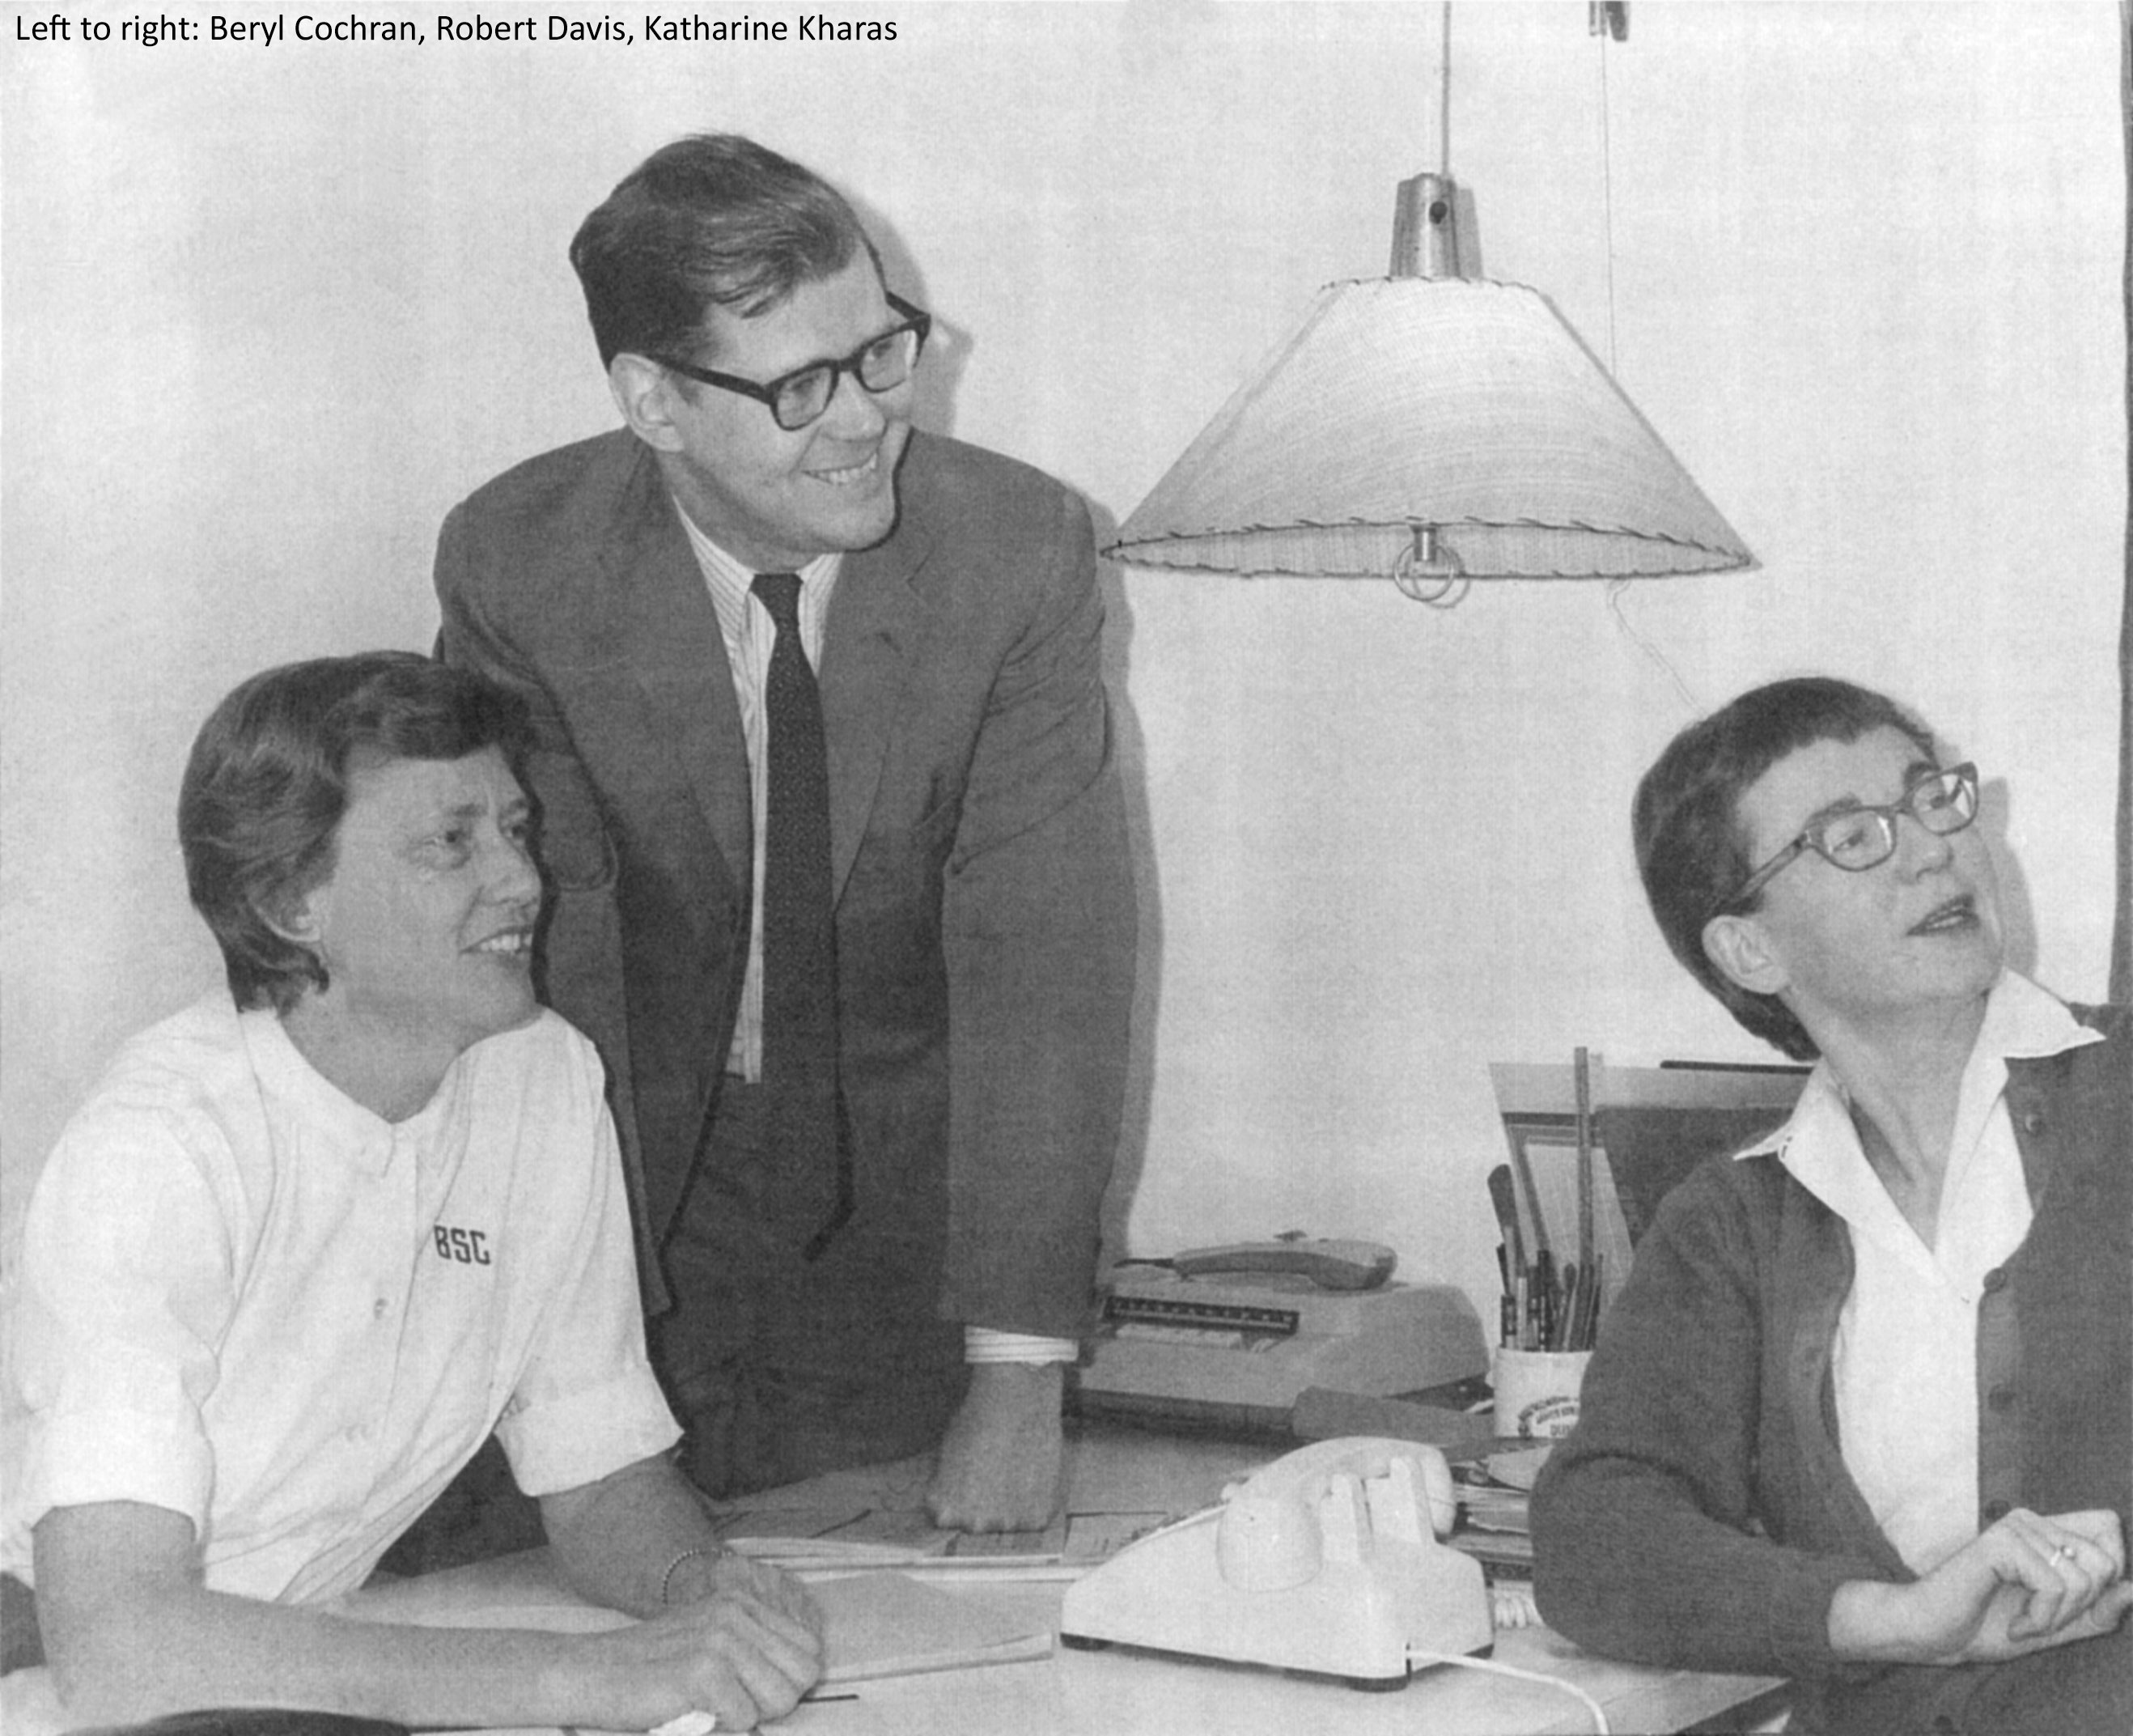 Balck and white photograph of Beryl Cochran, Robert Davis, and Katharine Kharas